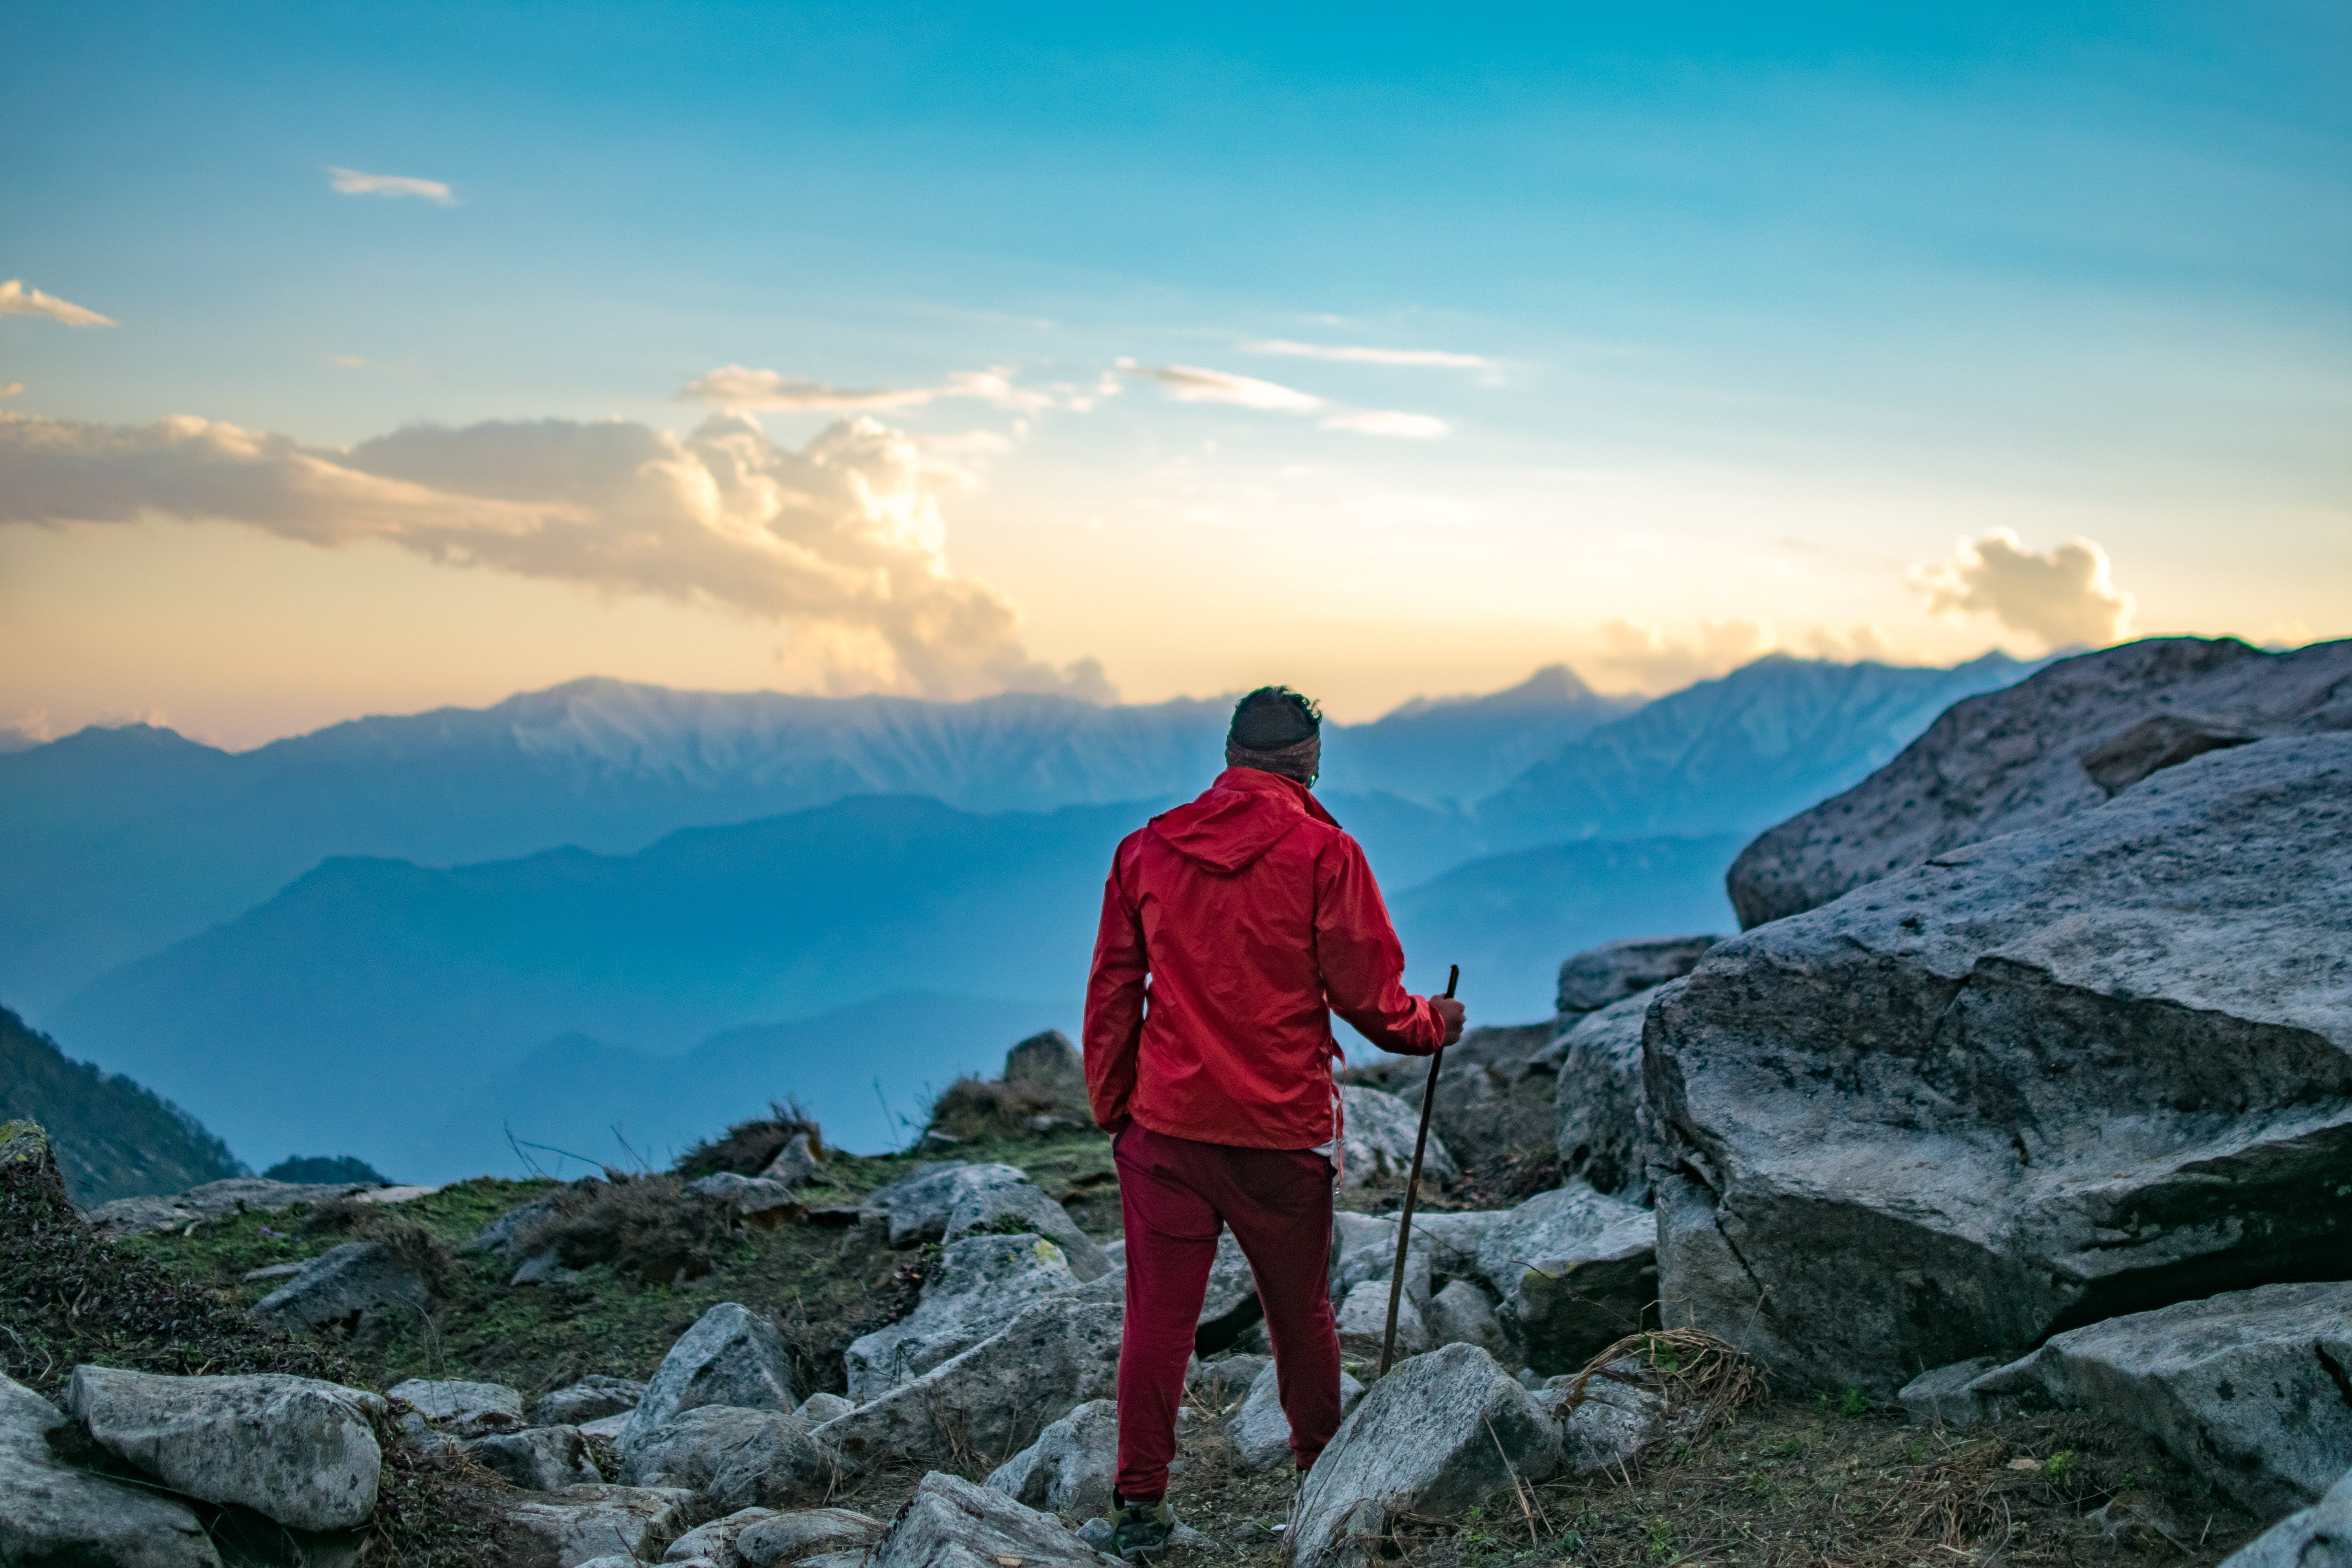 Person Wearing Red Jacket and Maroon Pants Holding Stick Walking on the Rocks at Daytime Photography